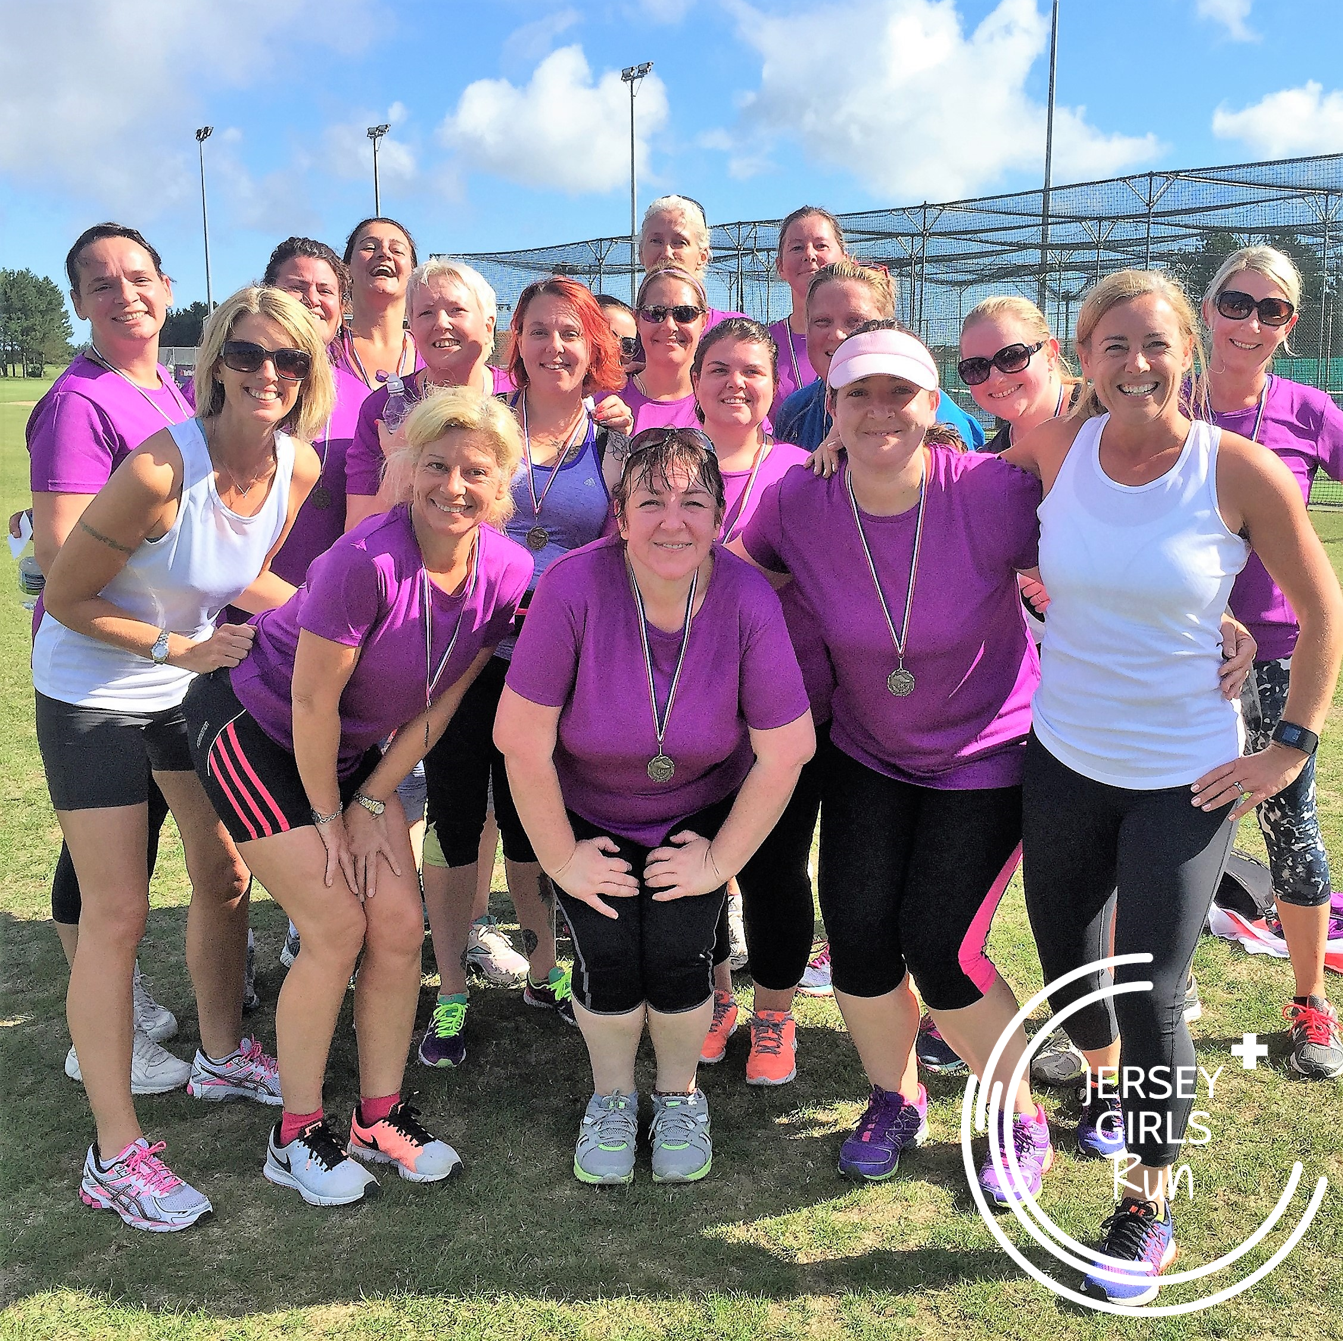 6 AUGUST 2016 - JERSEY GIRLS' first parkrun - What a fantastic day! Our first group of C25kers headed up to parkrun to complete their first 5k. What an amazing 9 weeks we've had with them.